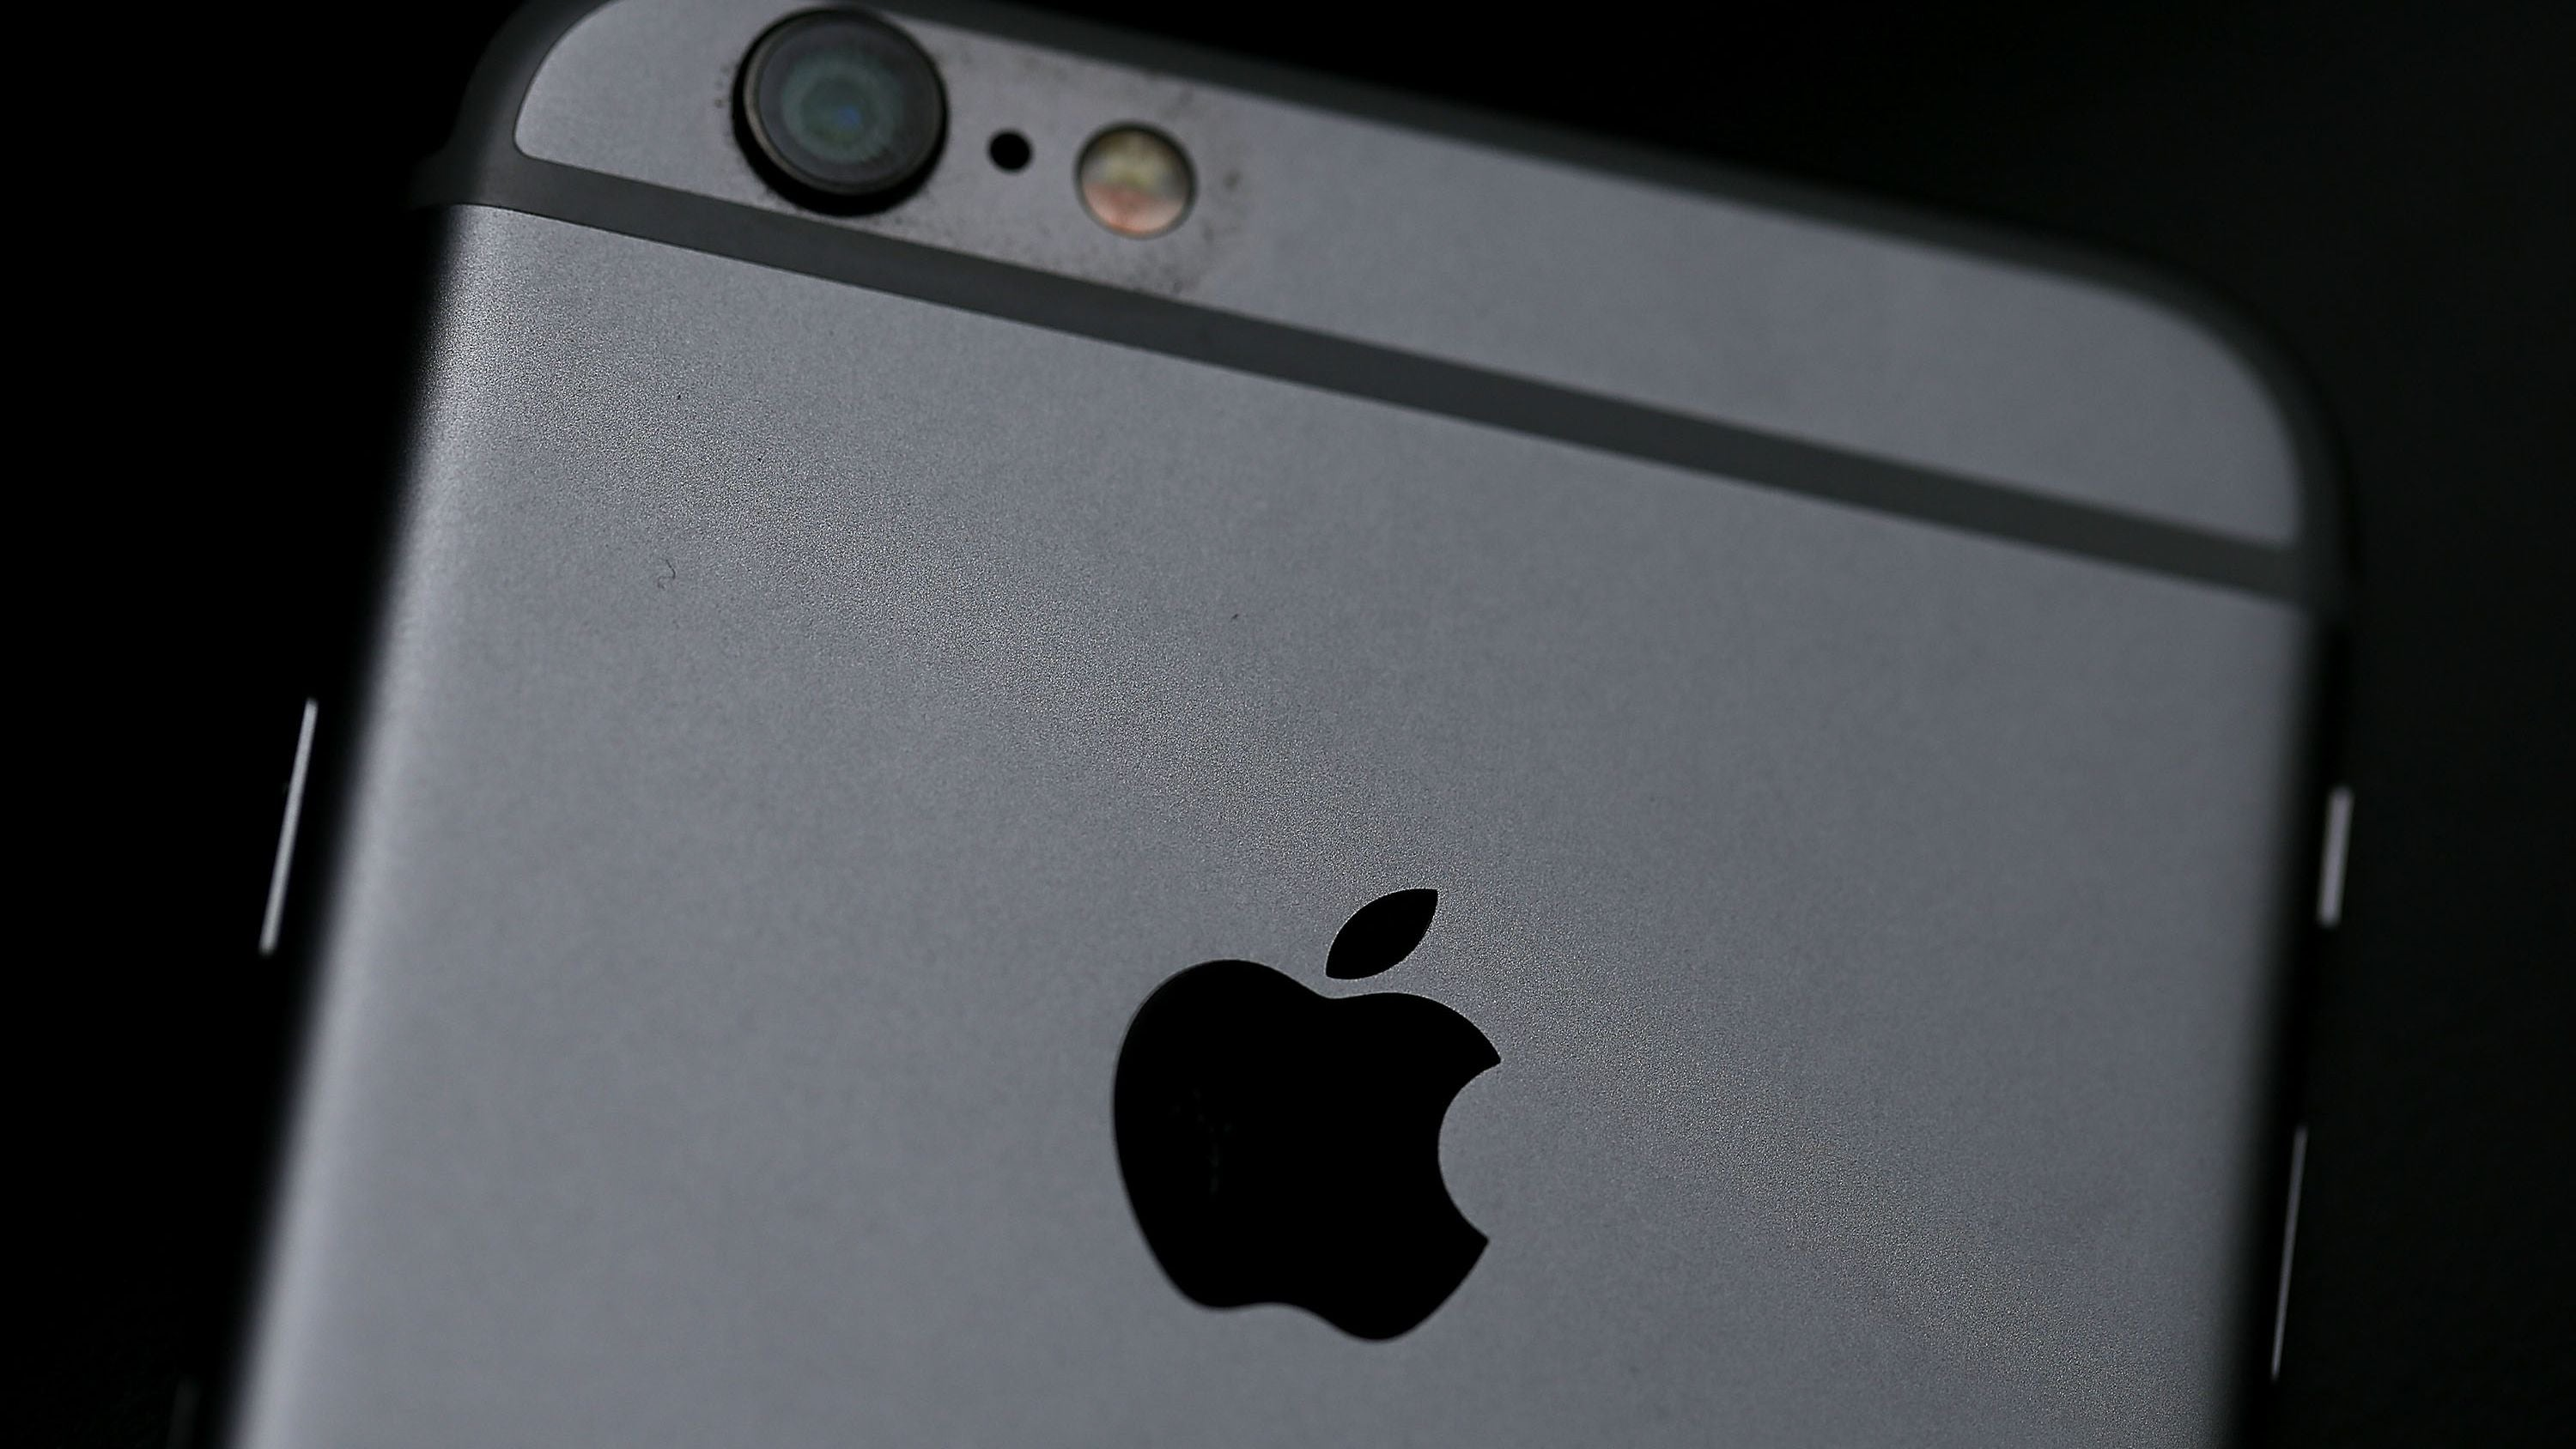 This App Can Tell You If Your iPhone Has Been Secretly Hacked